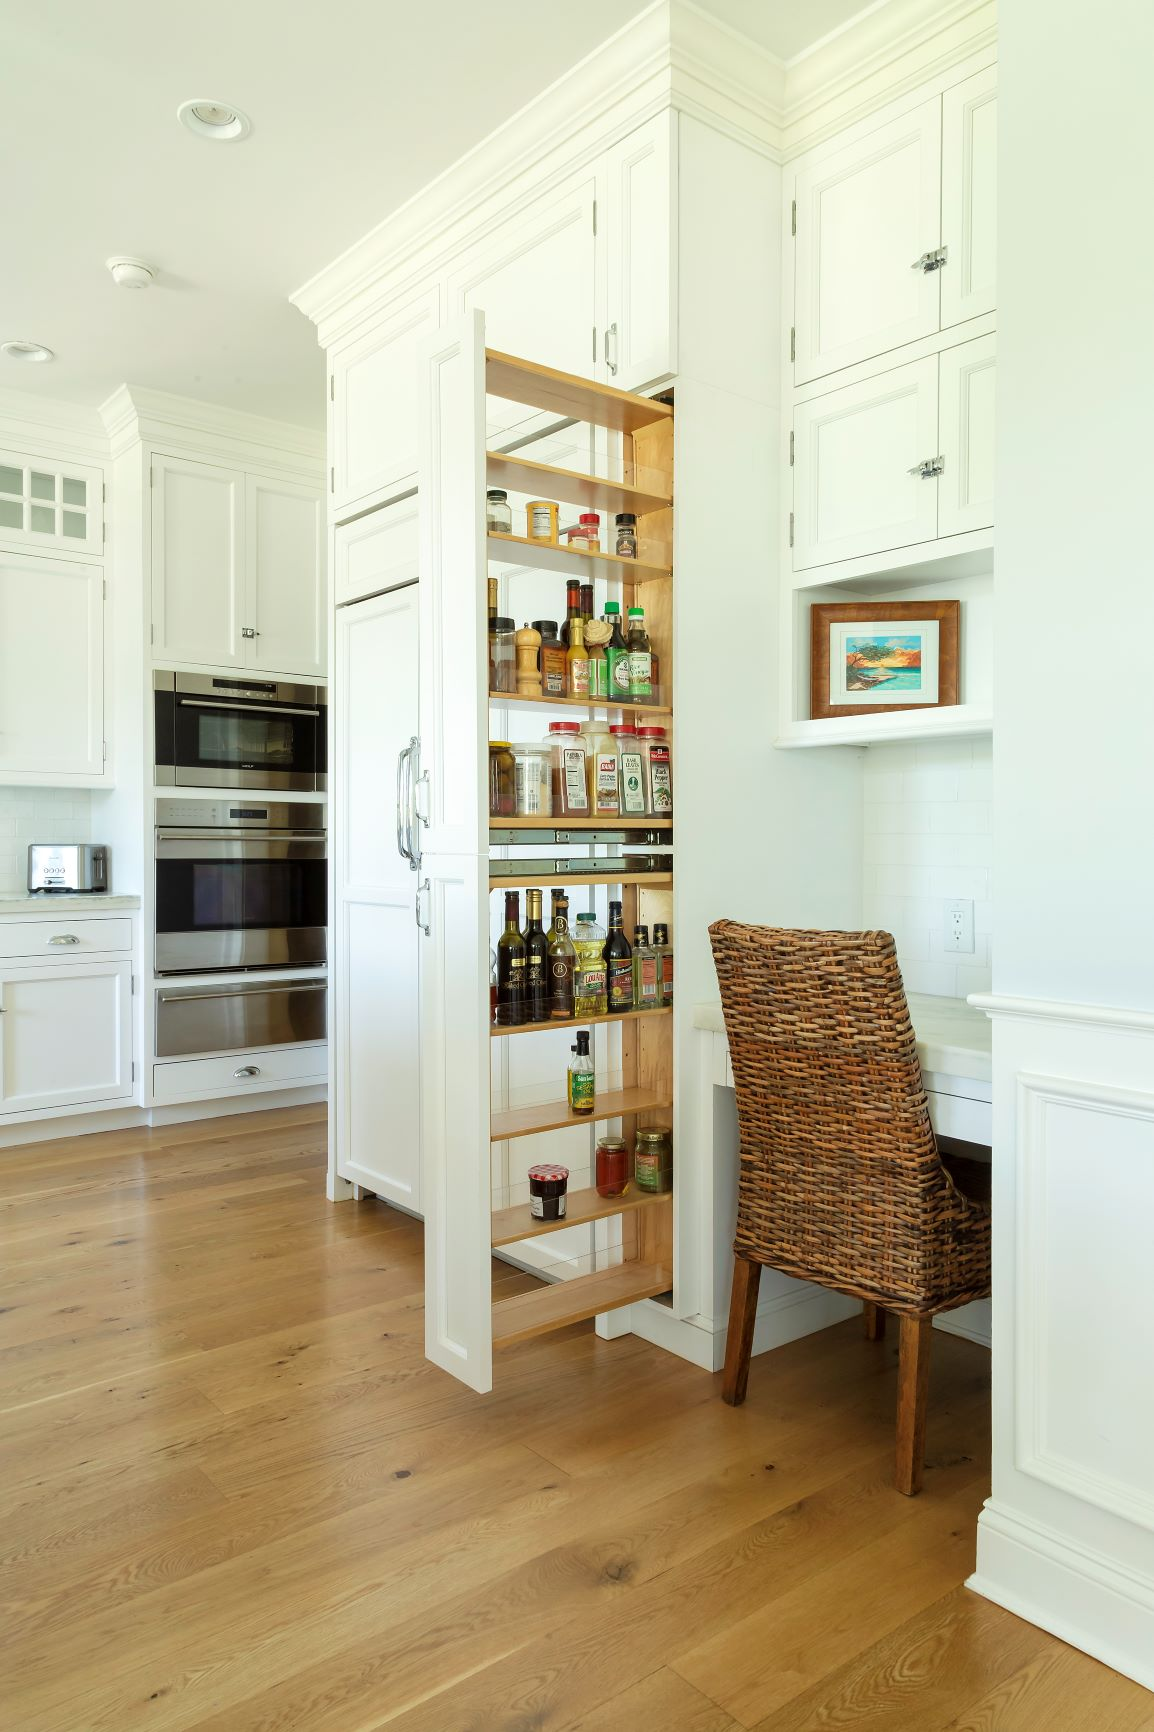 Transitional kitchen with desk area and pull out shelves